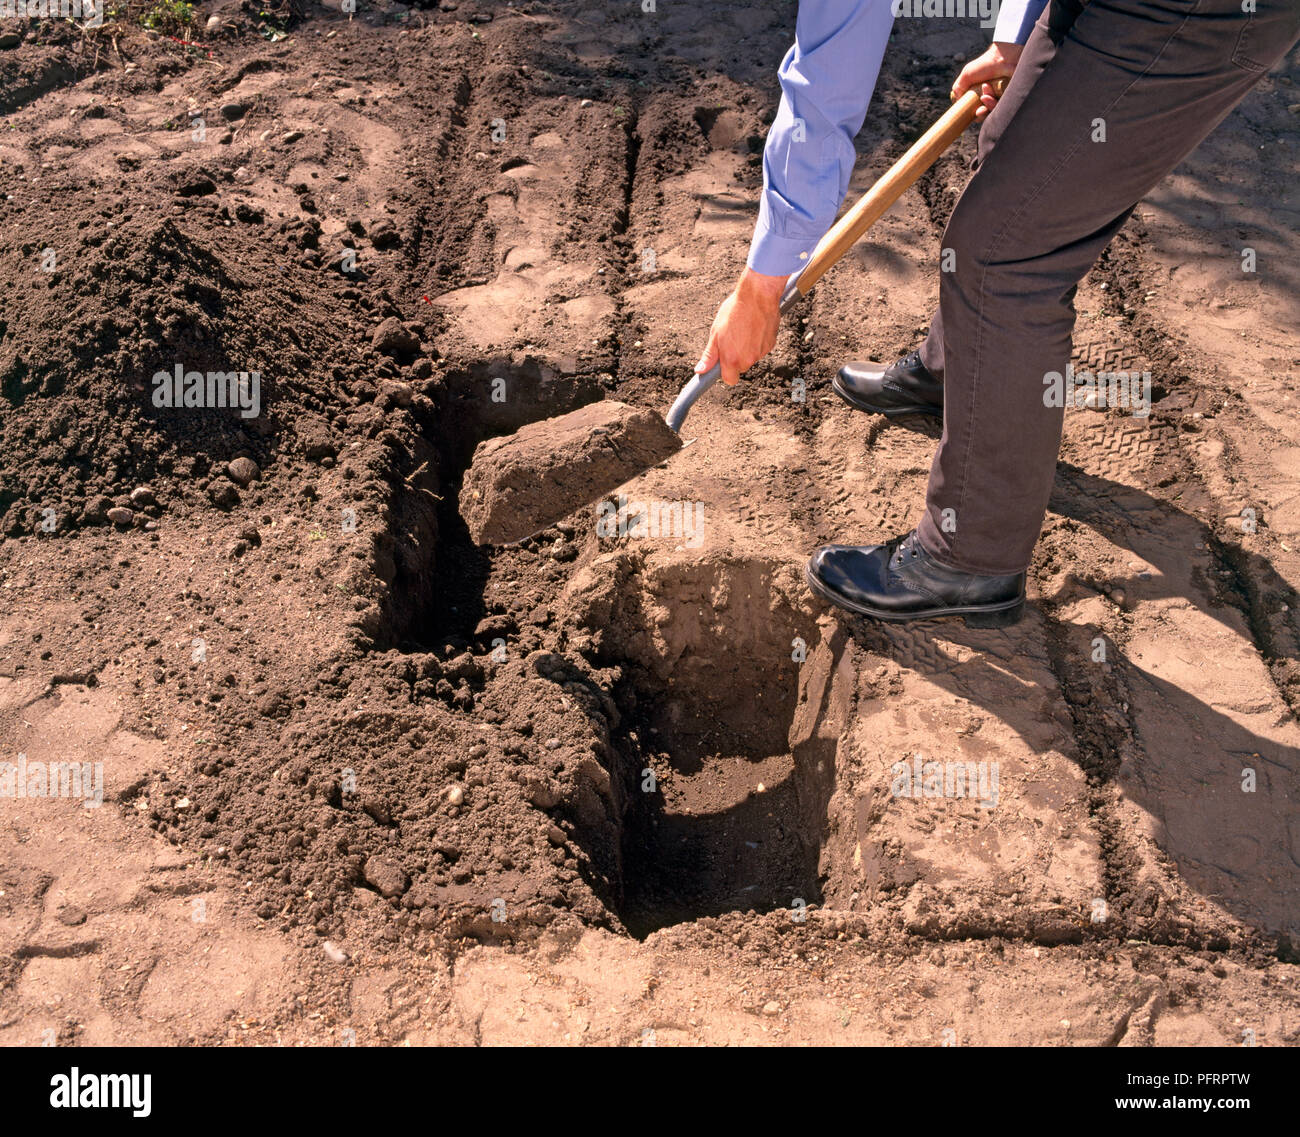 Digging Trench Garden Stock Photos & Digging Trench Garden